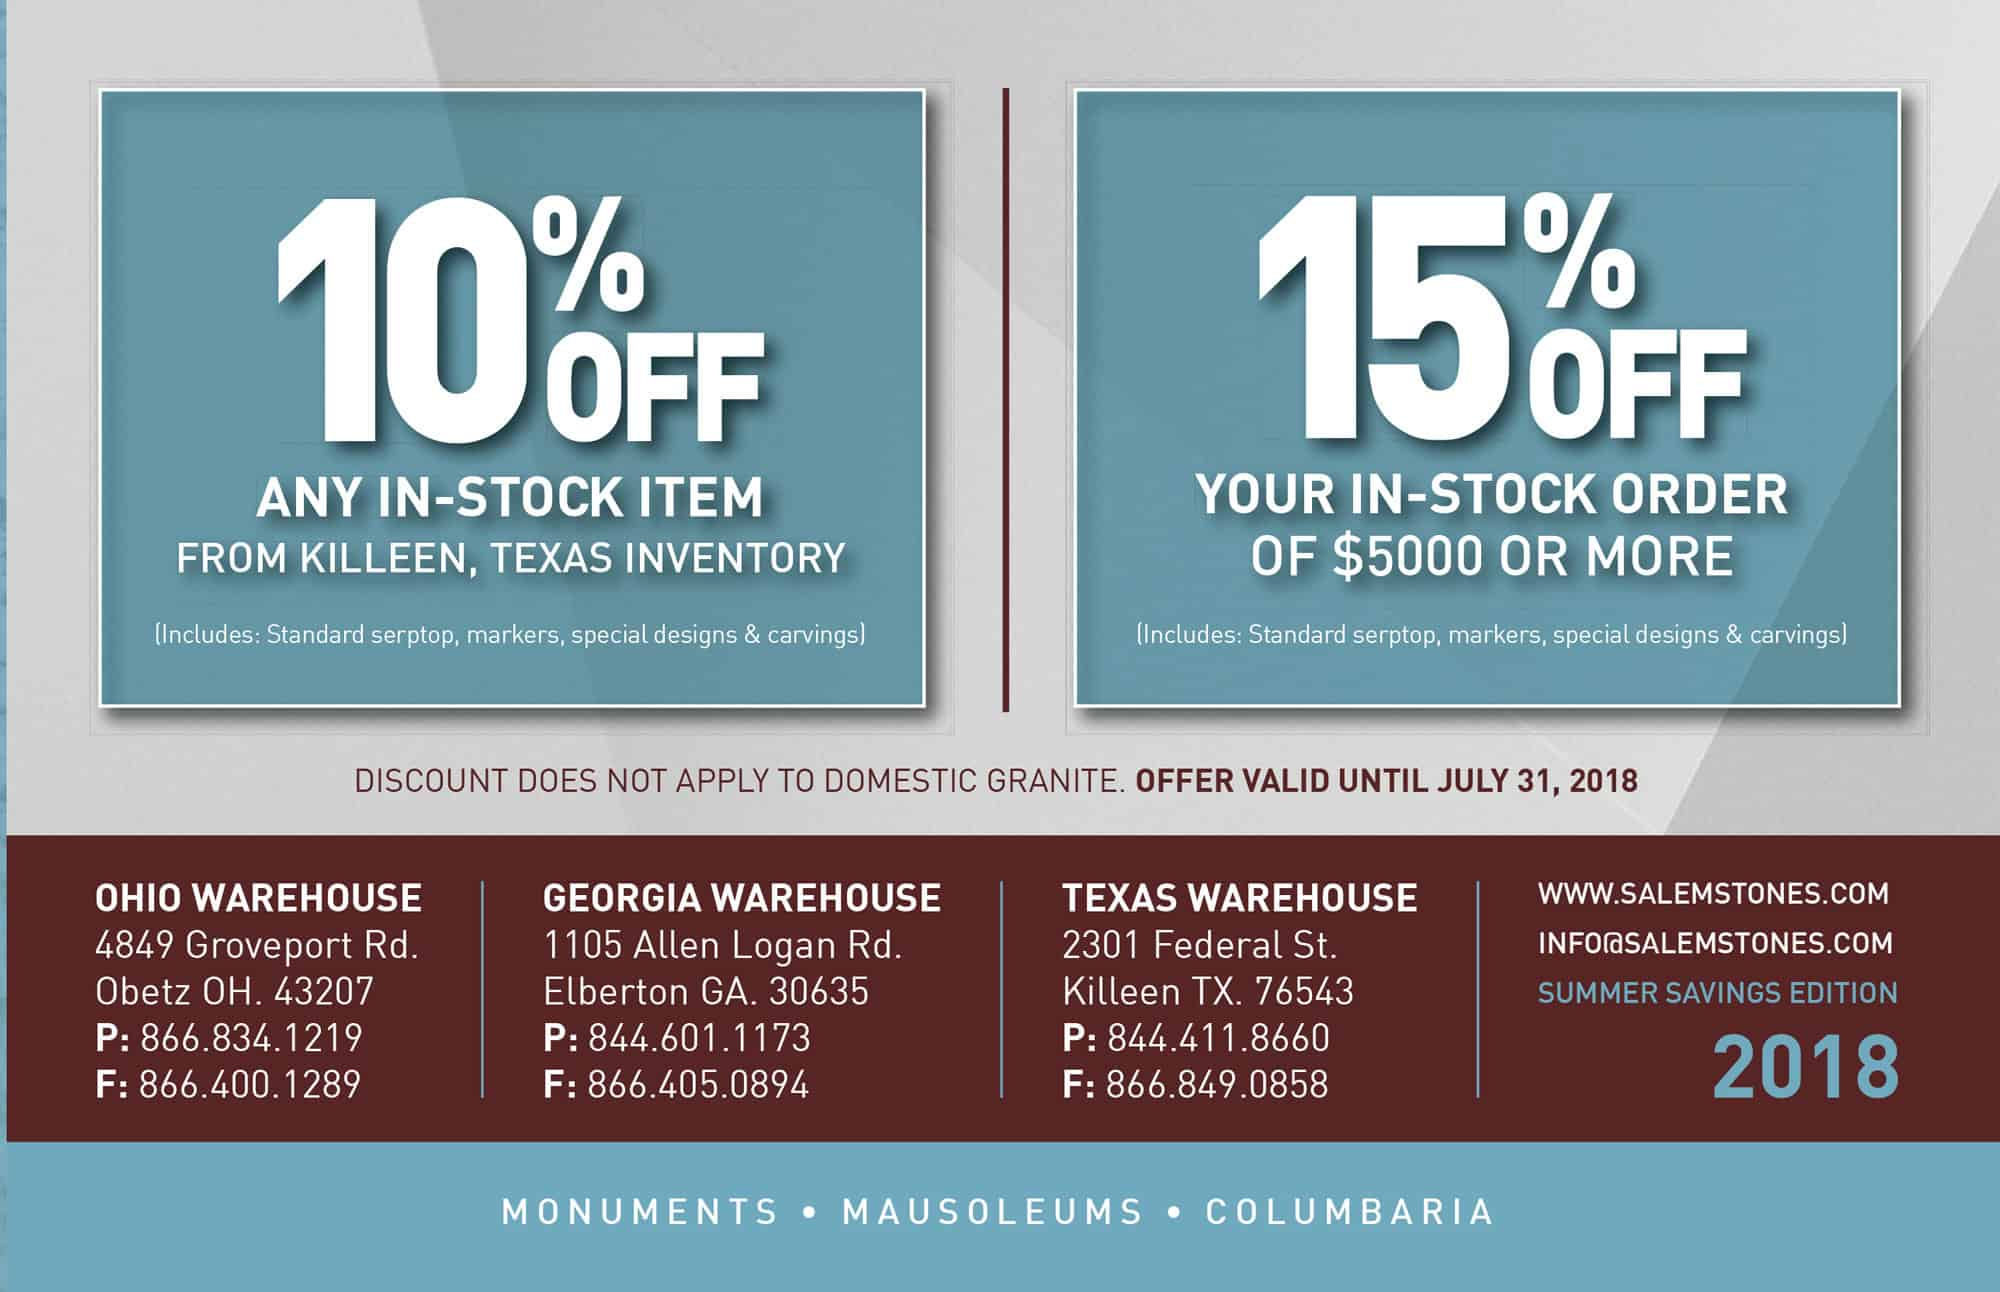 10% OFF orders from Texas Warehouse and 15% OFF all orders over $5,000